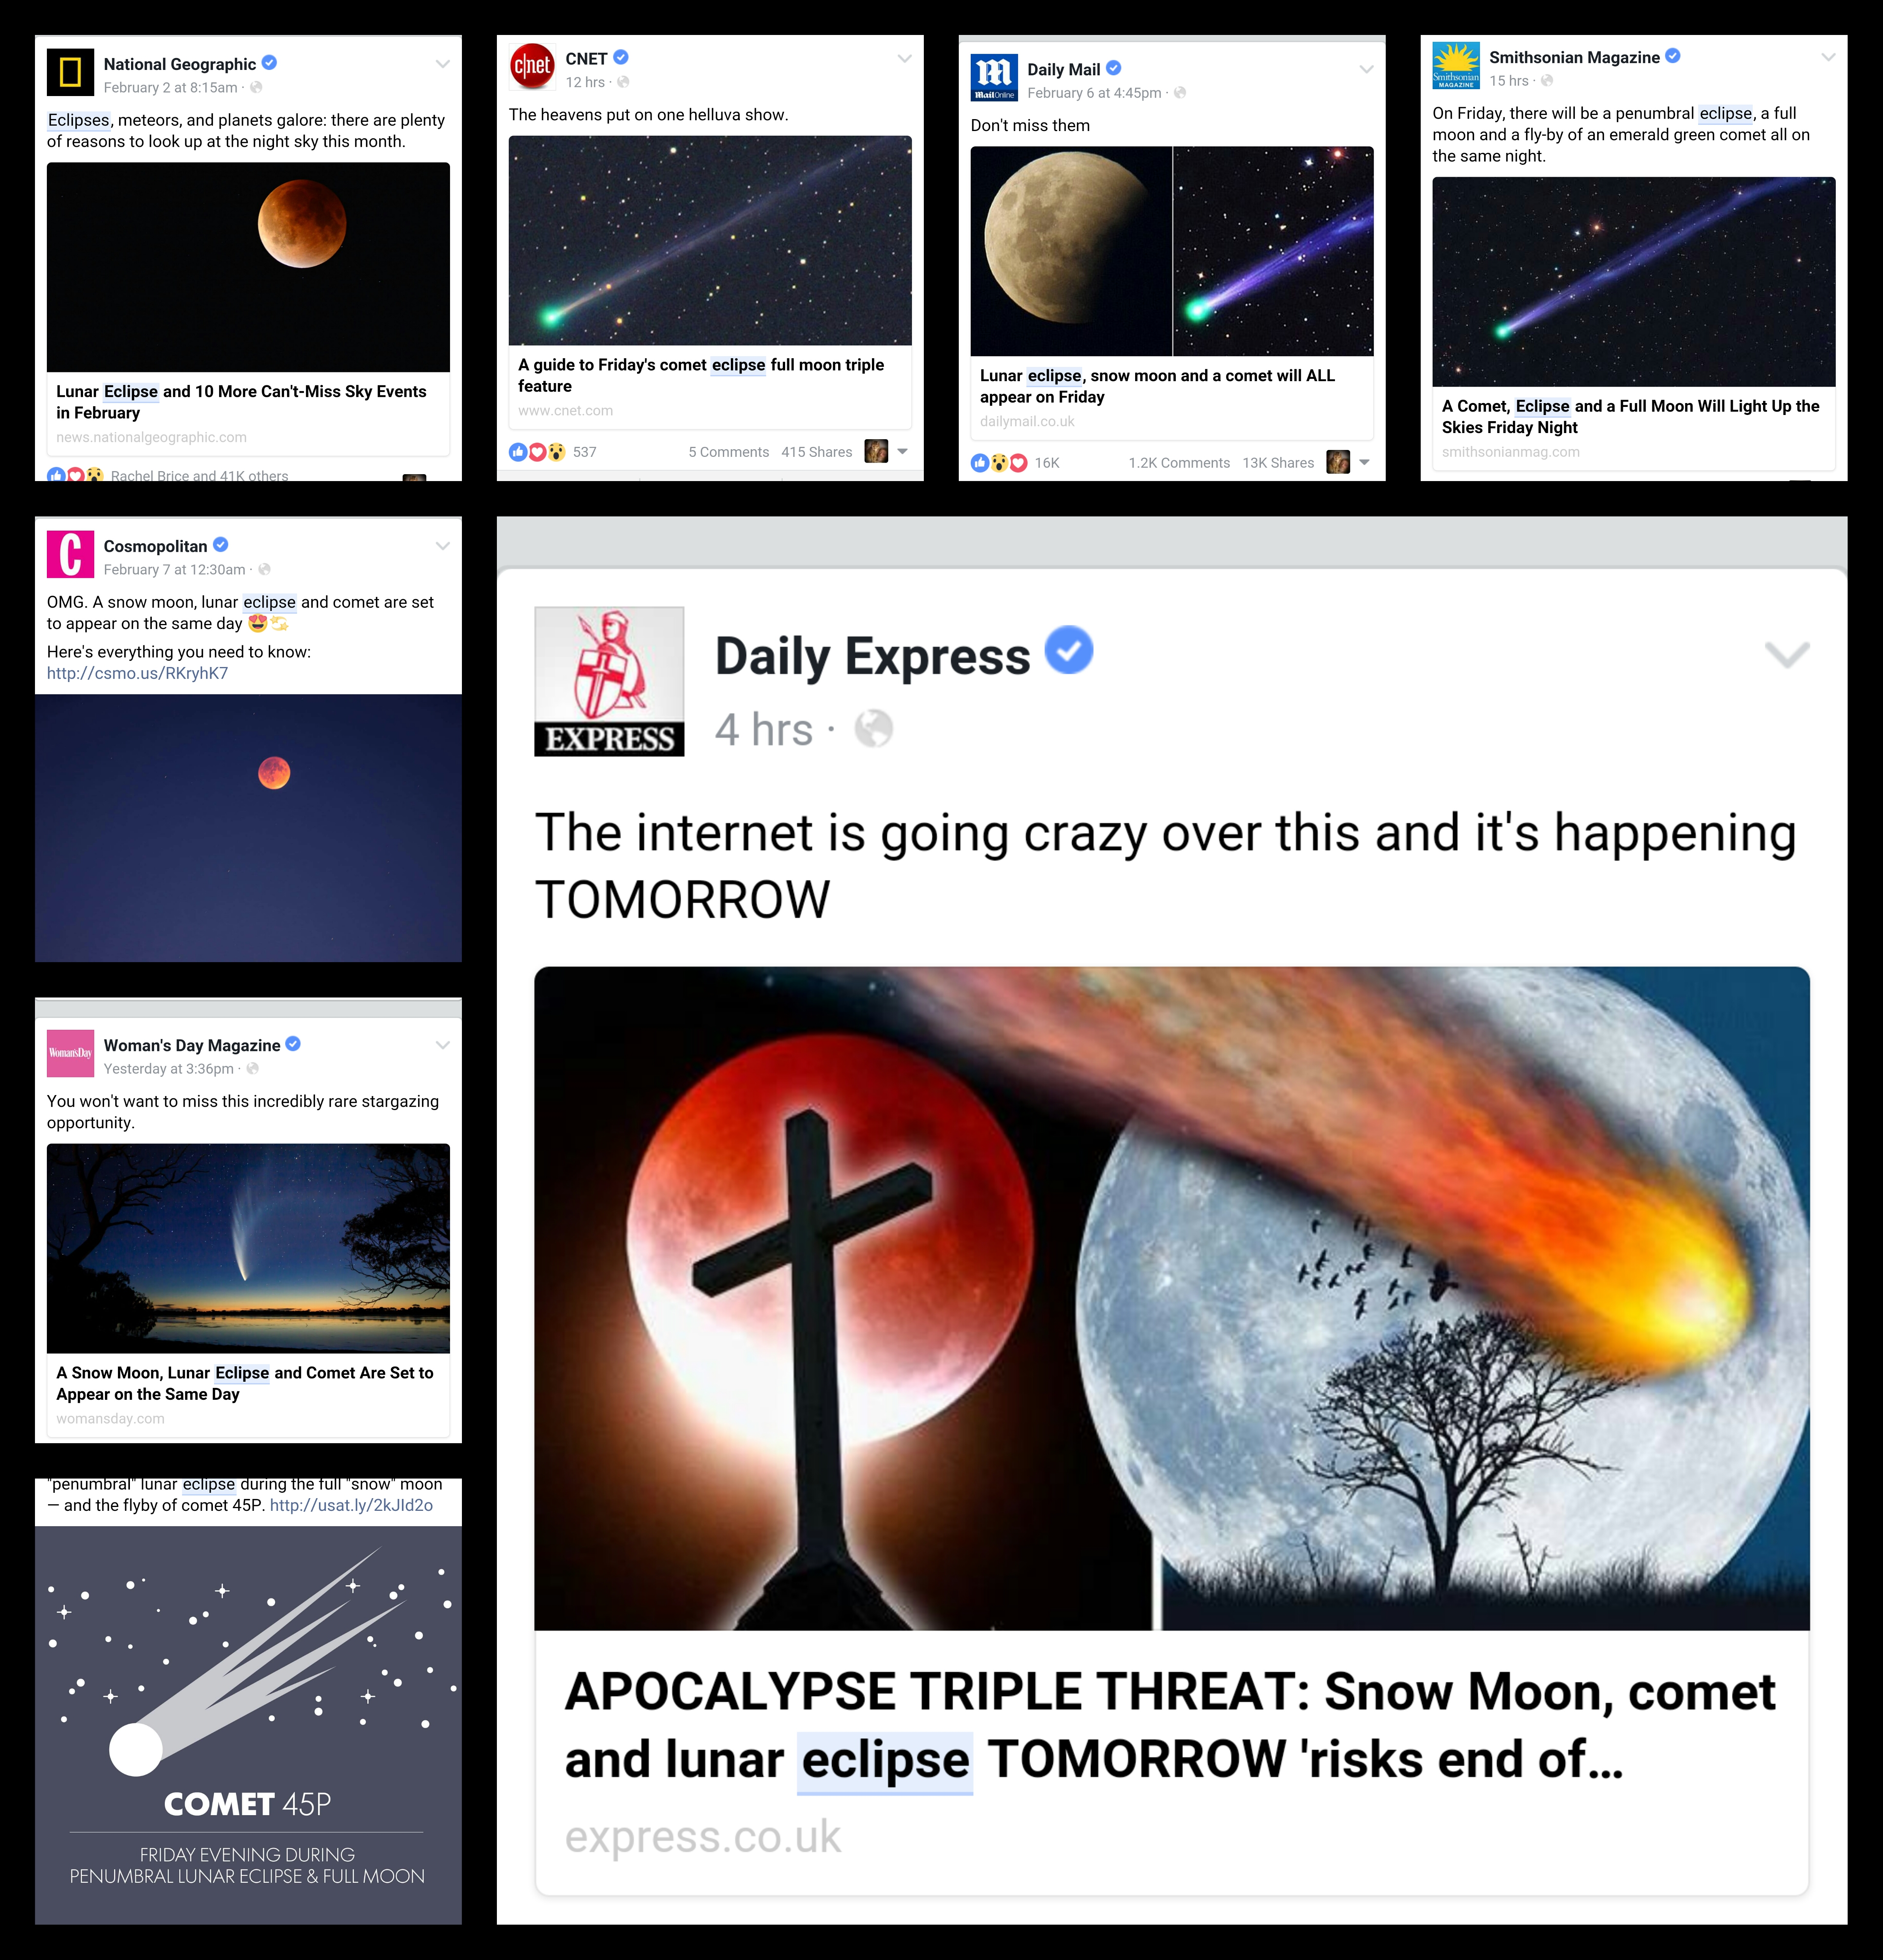 Full moon eclipse and a comet reality check time cumbrian sky photos and diagrams but the worst are actually linking them all together to make some kind of perfect storm of celestial omens heralding armageddon ccuart Choice Image